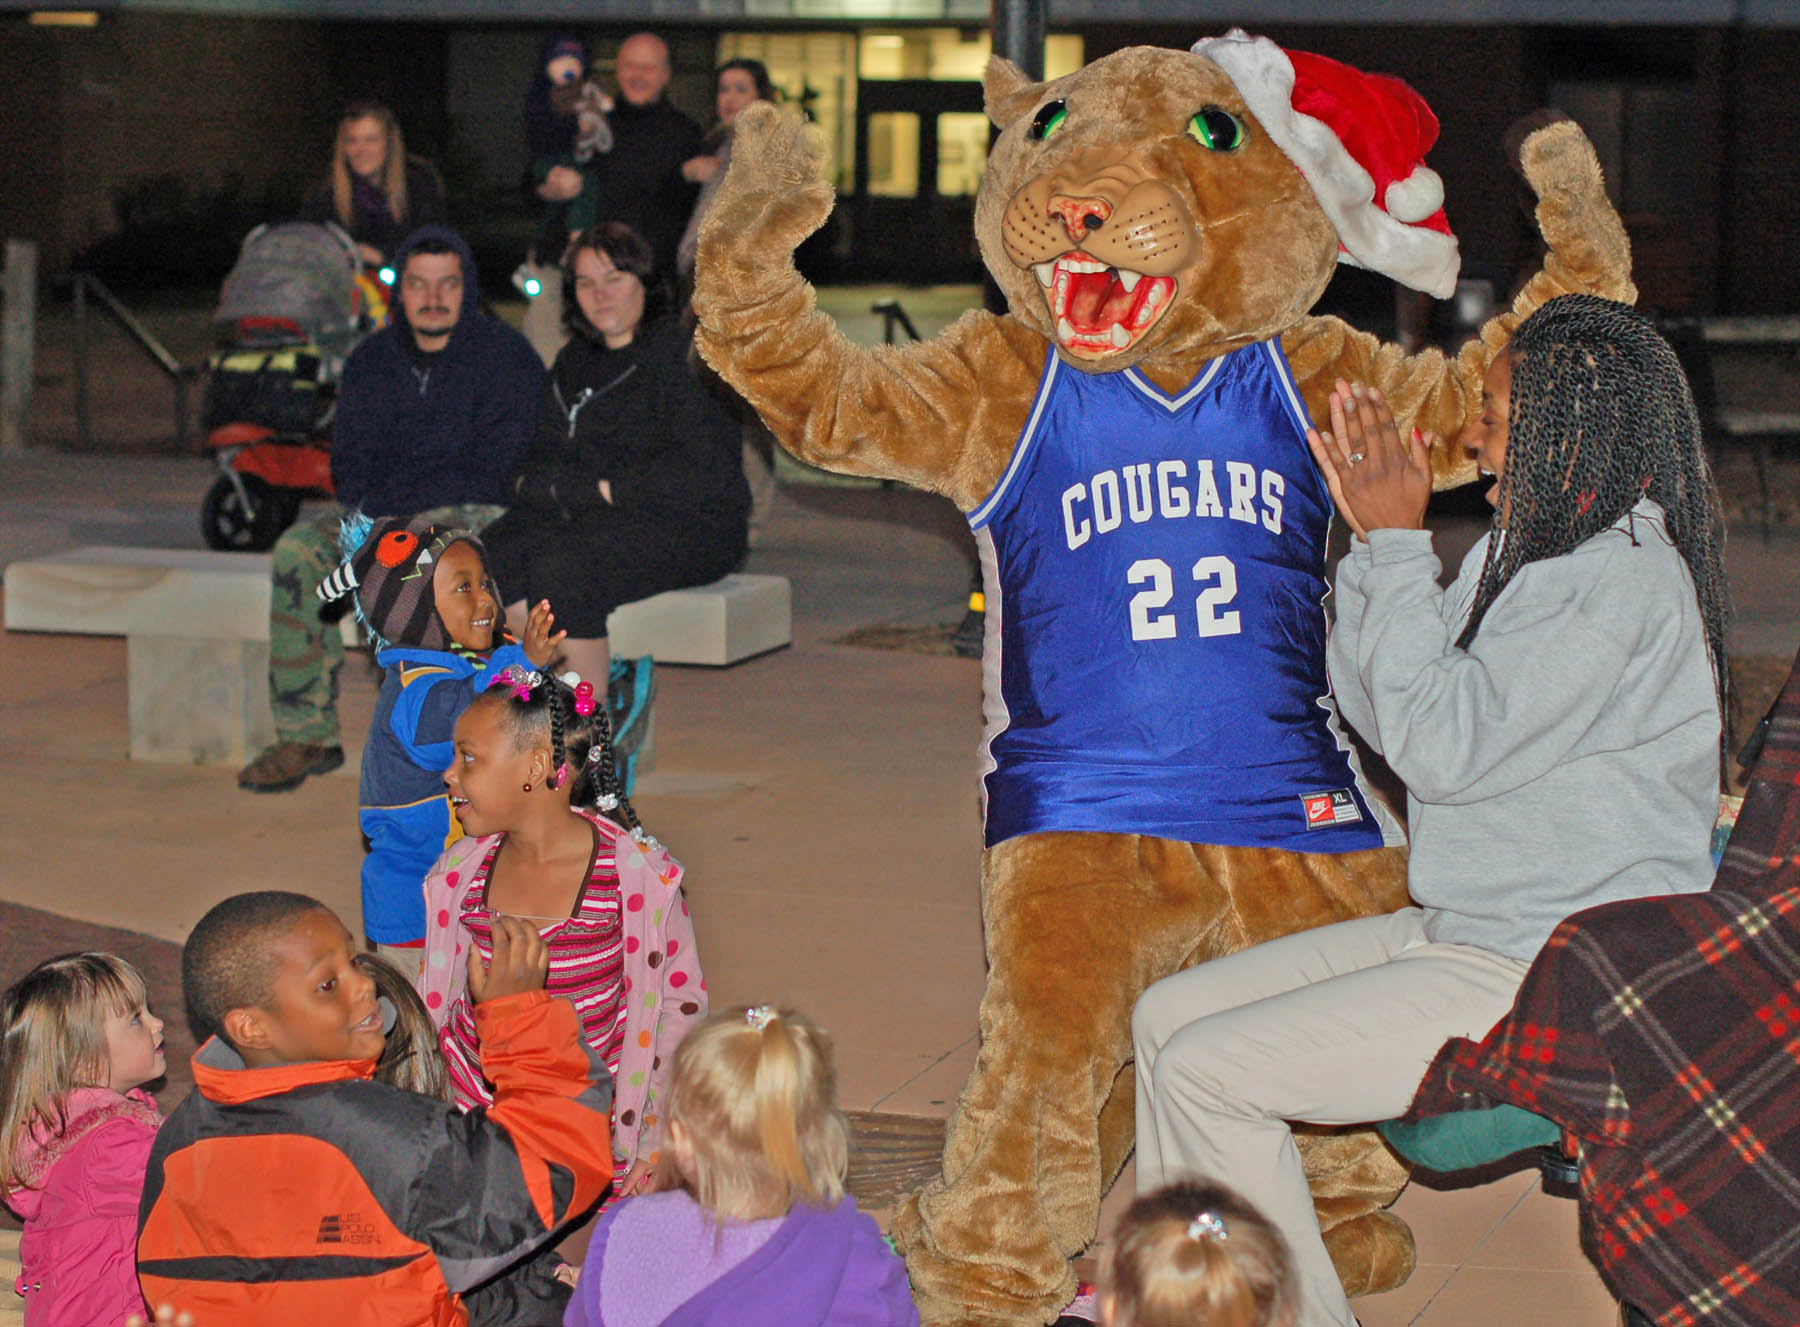 Click to enlarge,  Charlee Cougar (center), Central Carolina Community College's mascot, delights the children and college Ambassador Narrie Liverman (right), of Angier, during the college's Dec. 6 Christmas Tree Lighting event at the Lee County Campus, in Sanford. Inside that furry suit is sophomore David Green, who enjoys adding fun to college and community events. Green, a second-year Criminal Justice student, is a decorated combat veteran who served in Afghanistan in 2009. He jokes that his tour of duty in the Middle East has made it easy for him to endure the internal 125-degree temperature that the Charlee costume can reach after being worn for a while.